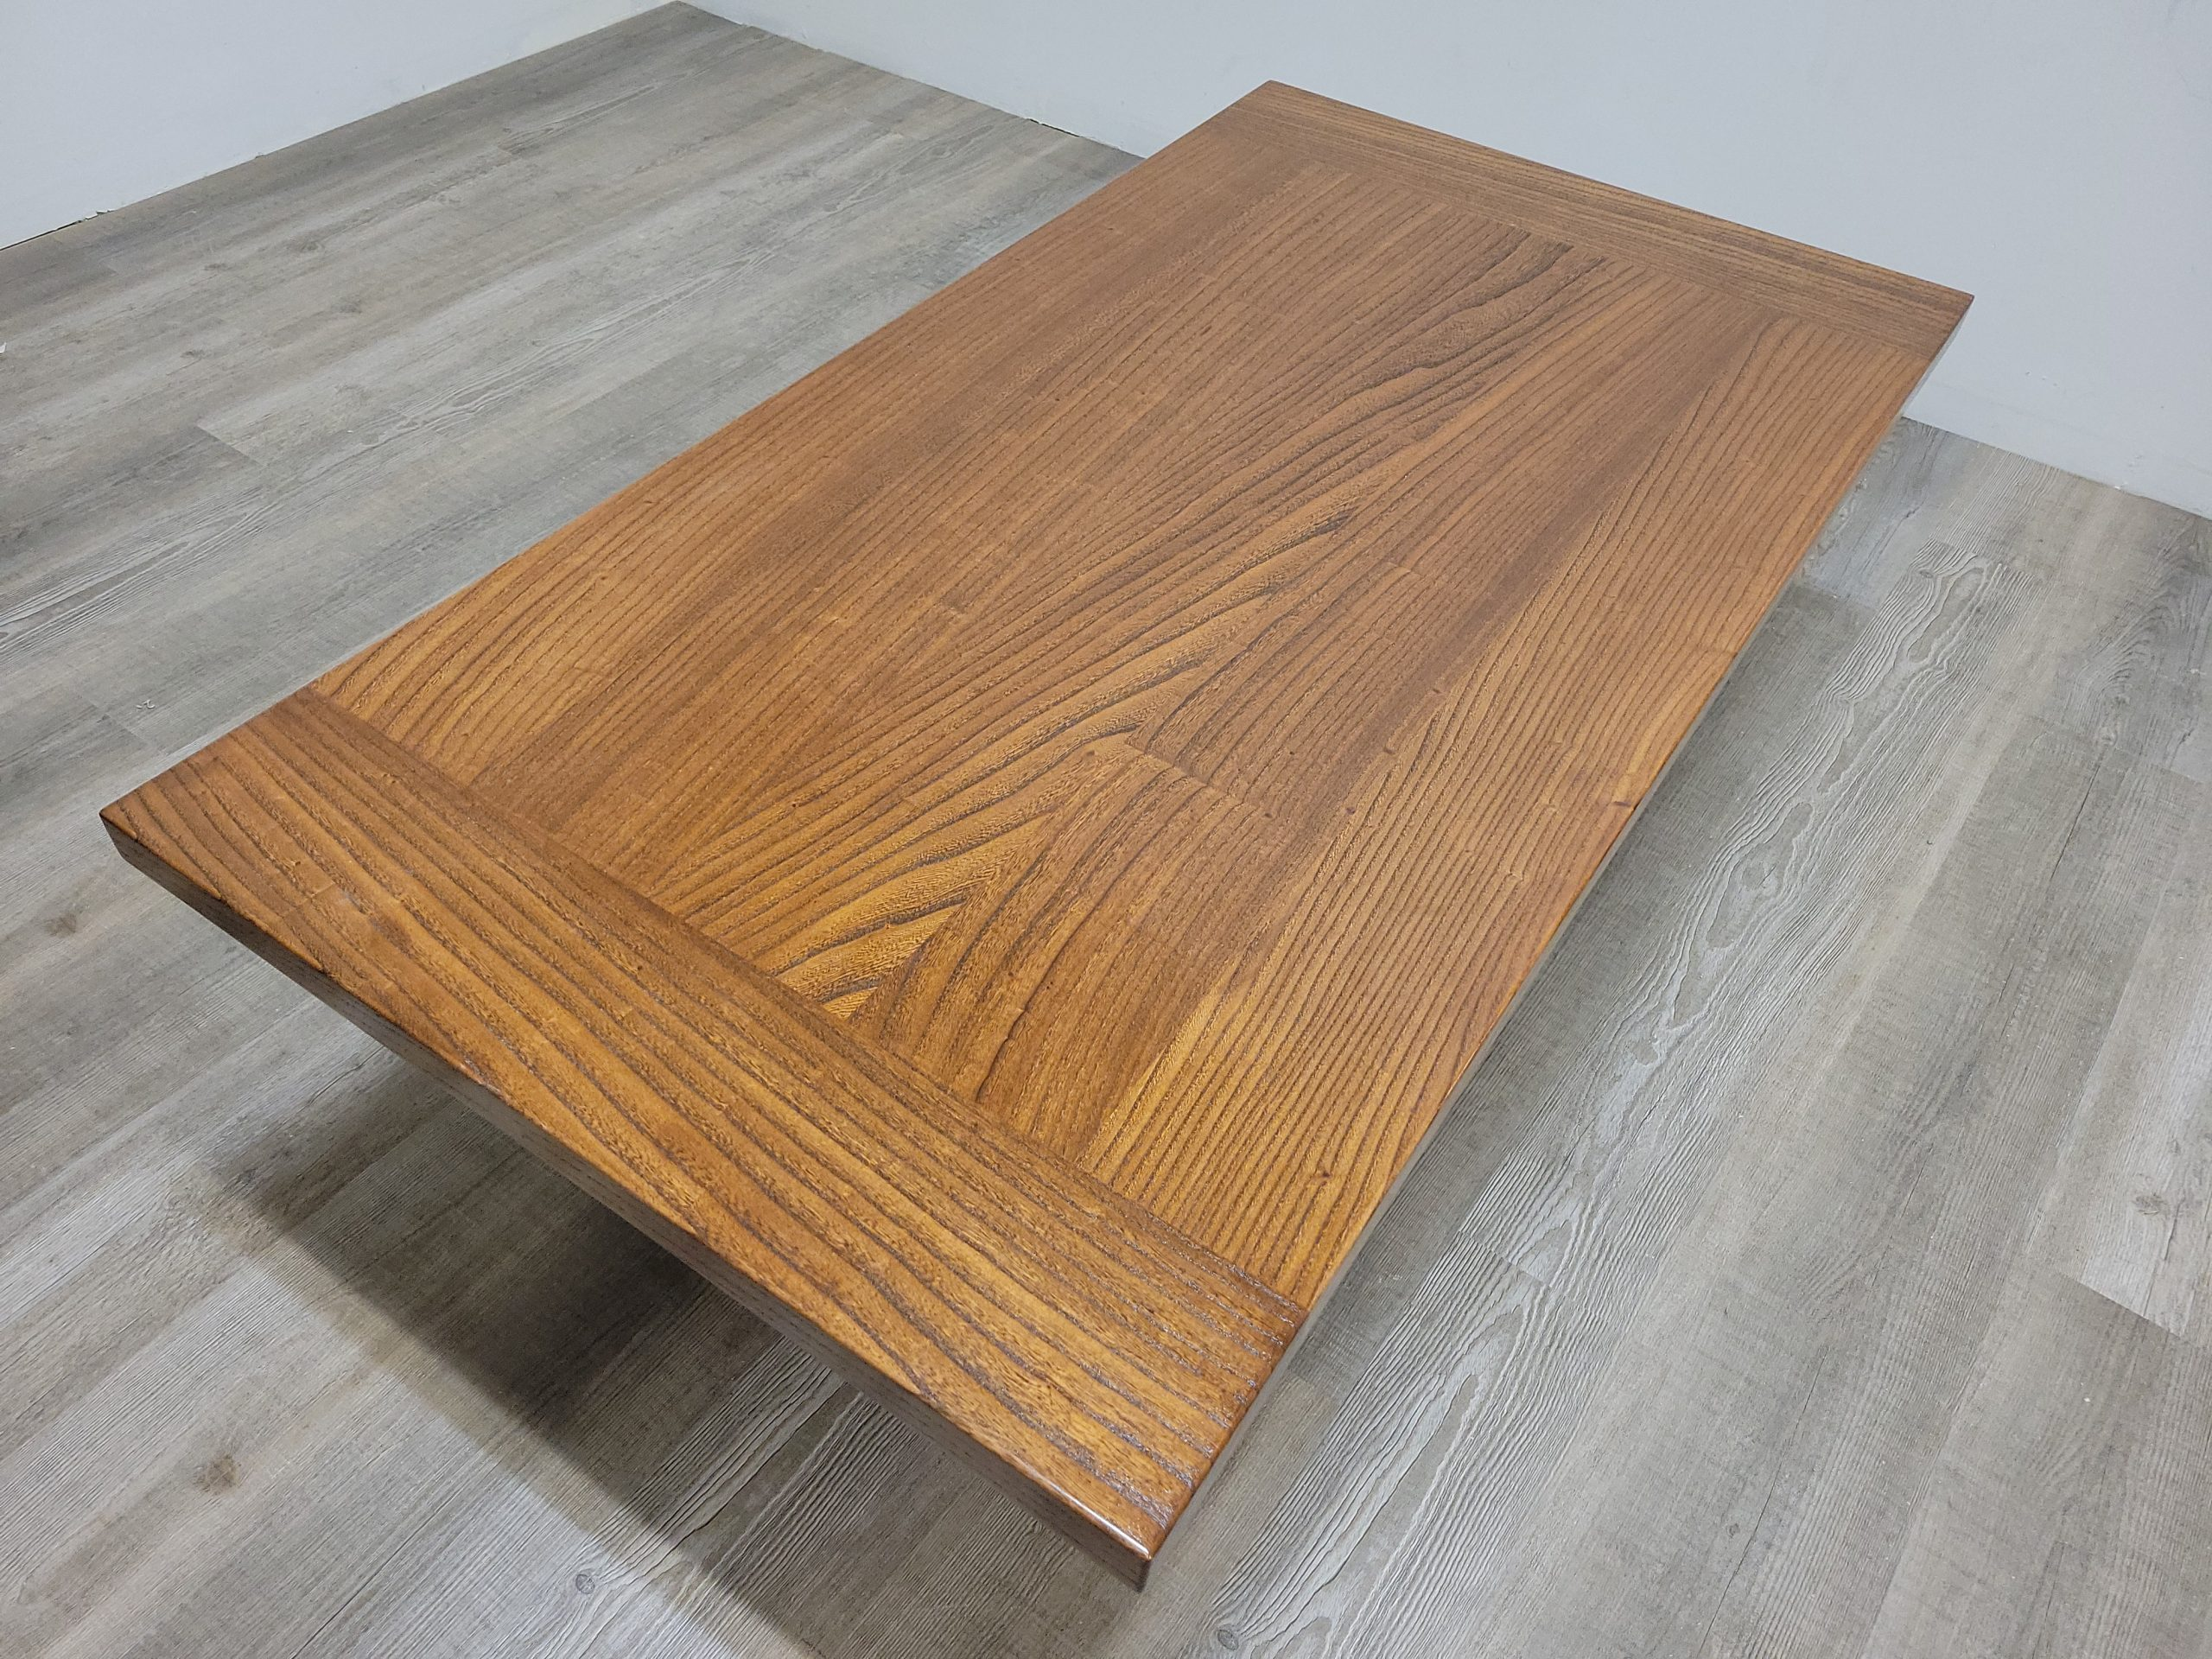 https://competitivewoodcraft.com/wp-content/uploads/2021/03/Coffee-Tables4-scaled.jpg